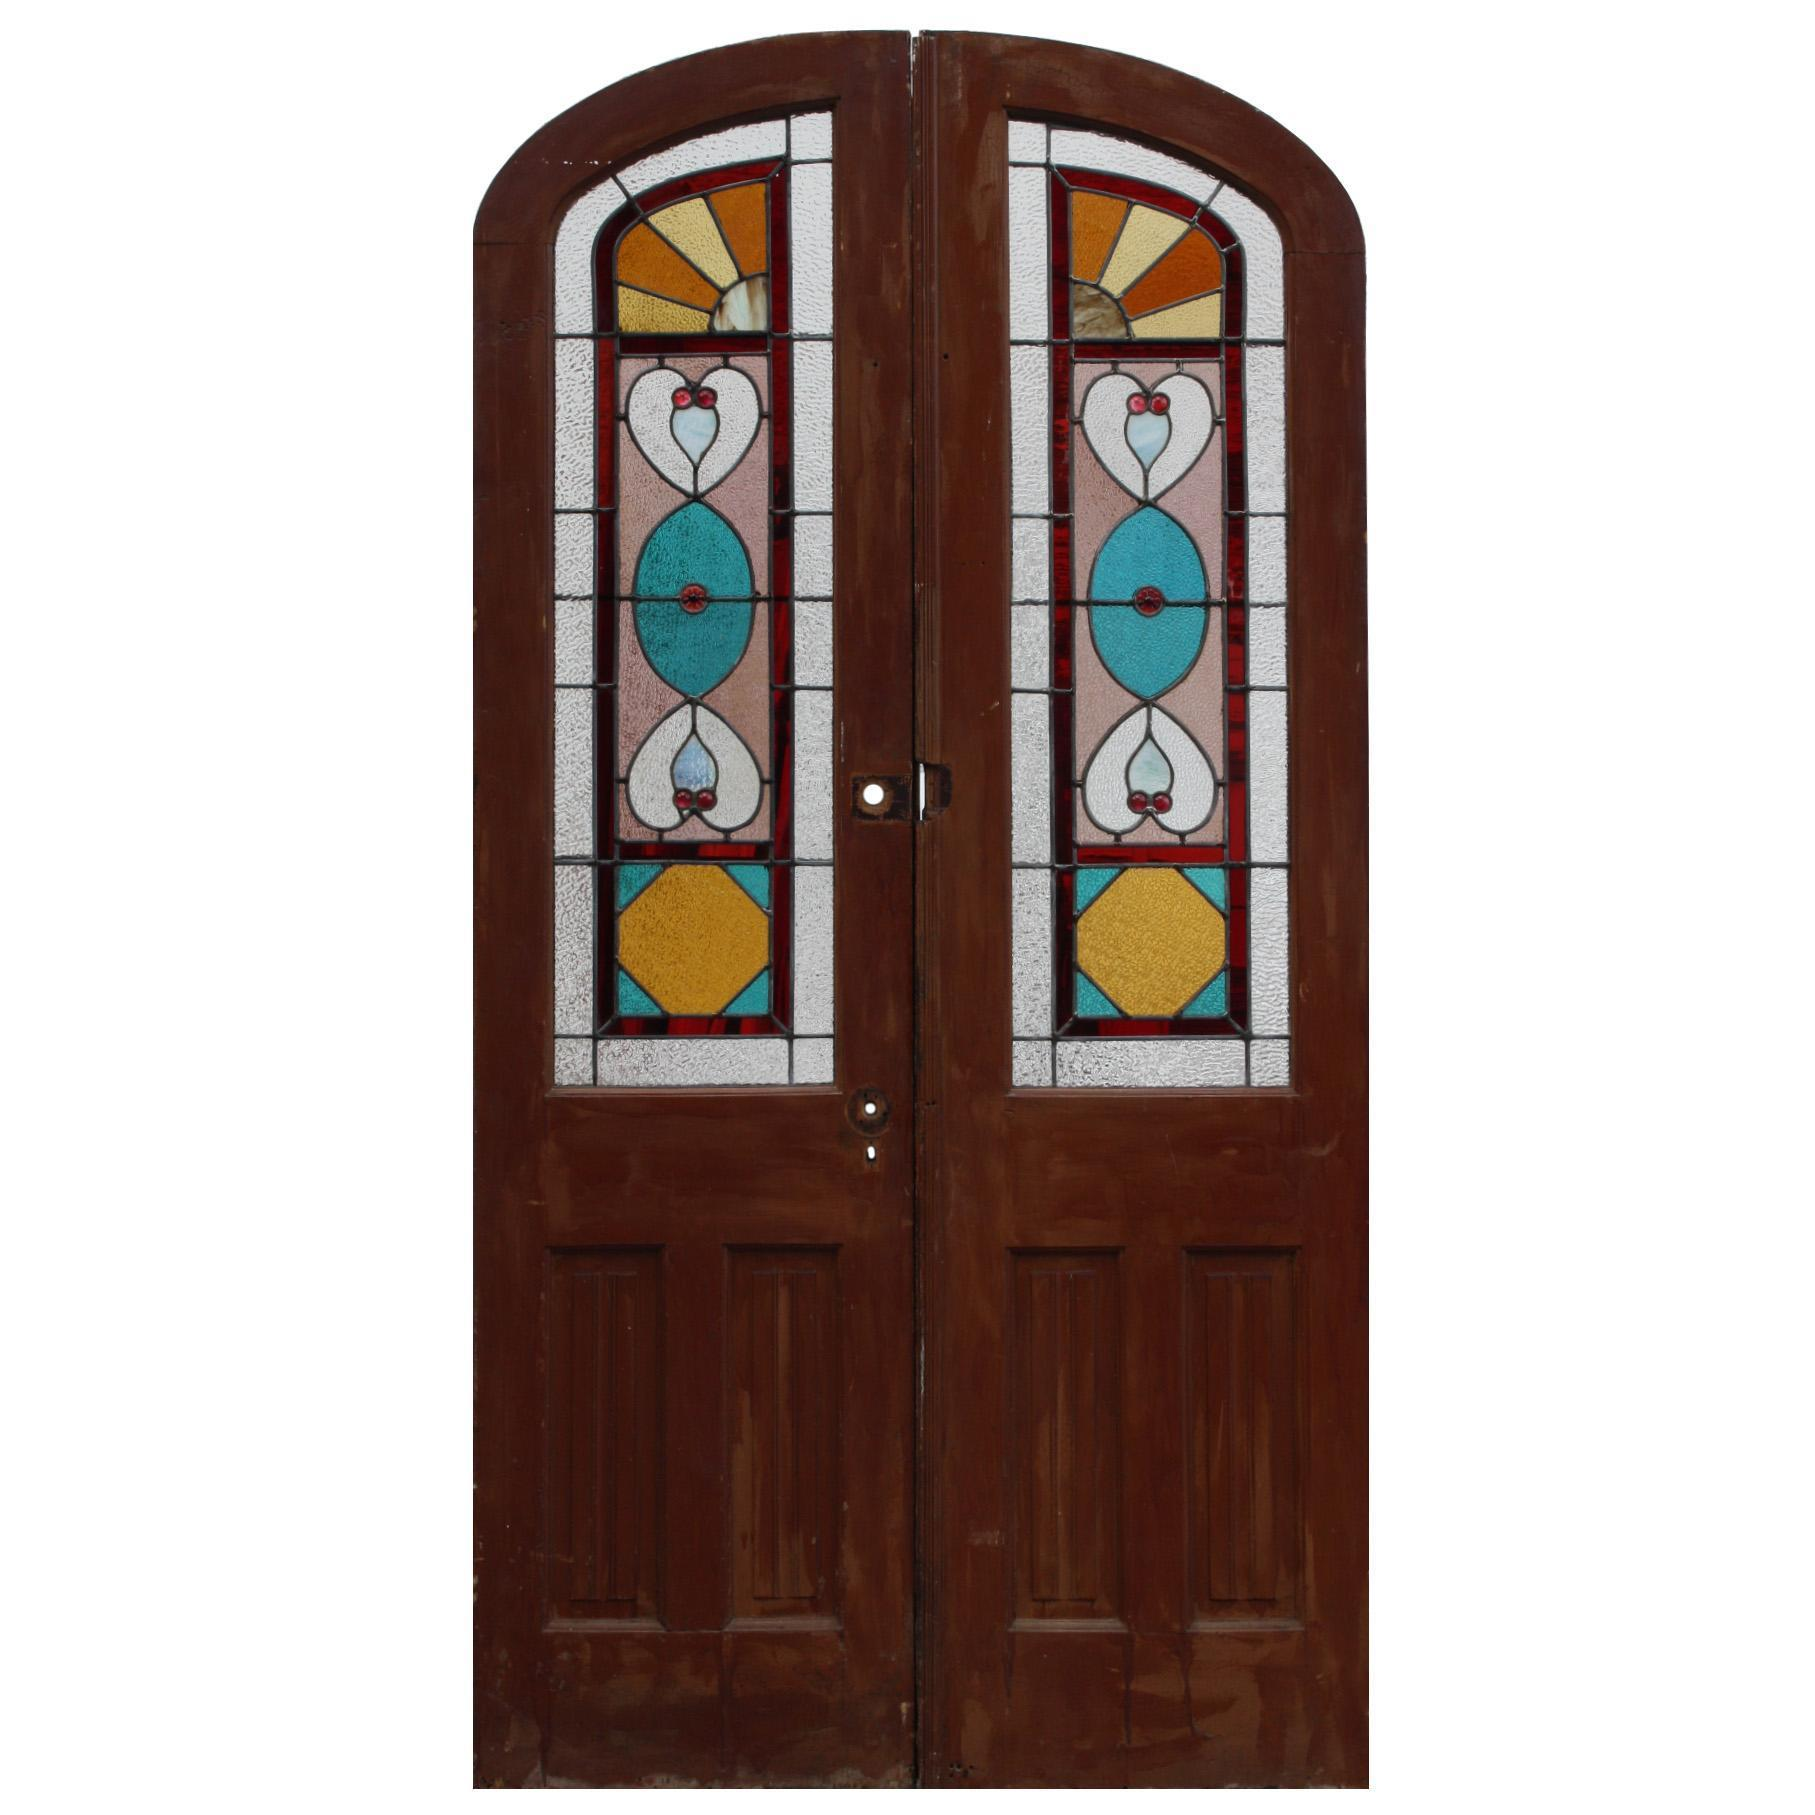 Charming Pair of Antique Doors with Jeweled Stained Glass, c. 1890